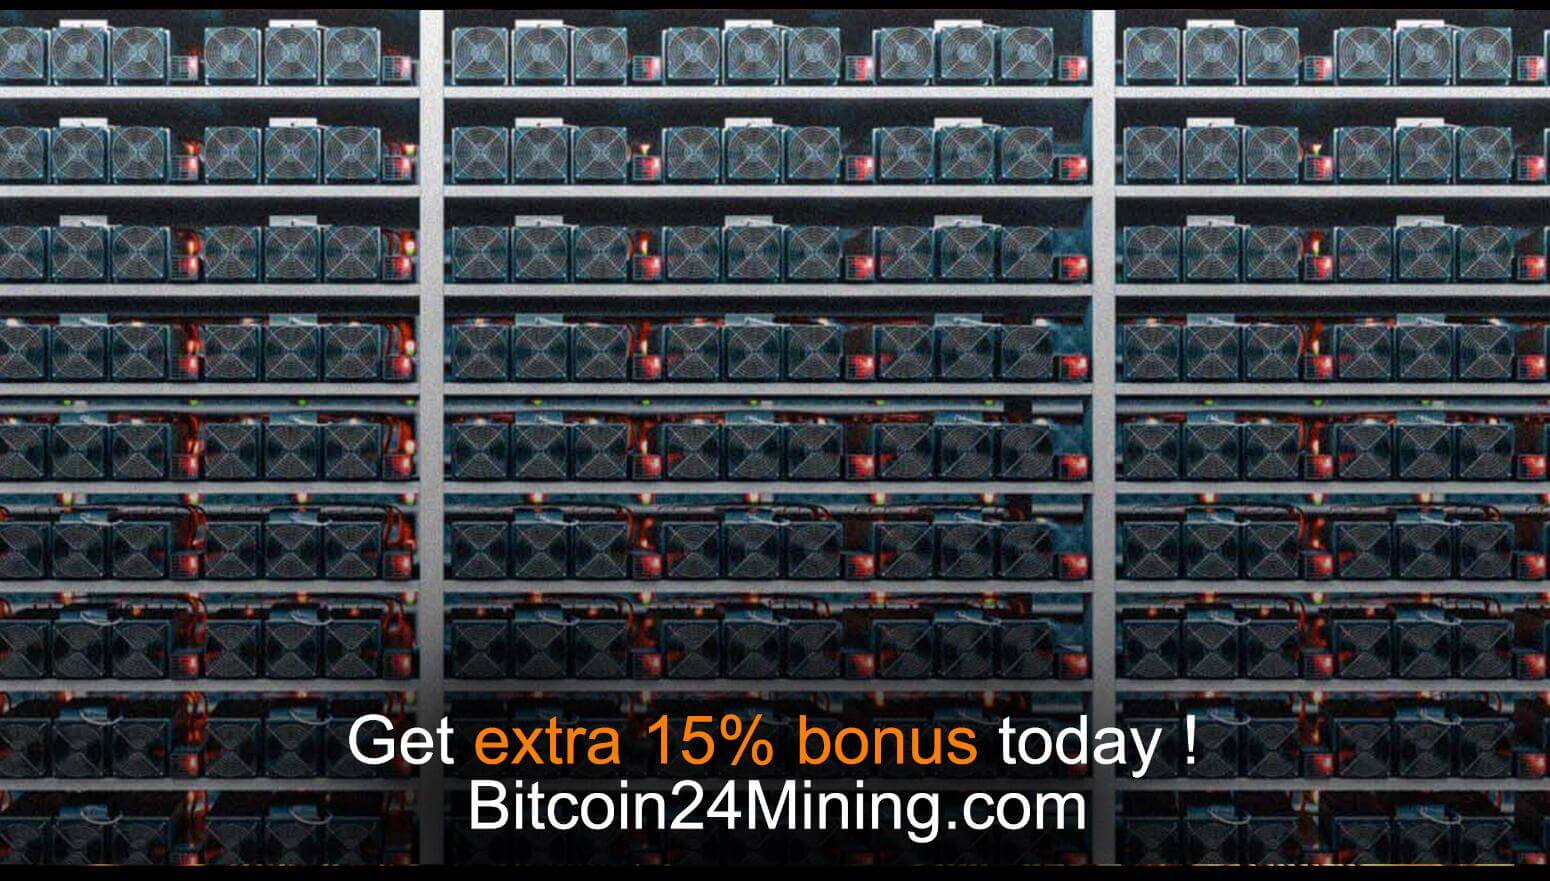 Bitcoin24mining Brings BTC Mining Contracts to Make Money for Each Novice & Experienced Investor